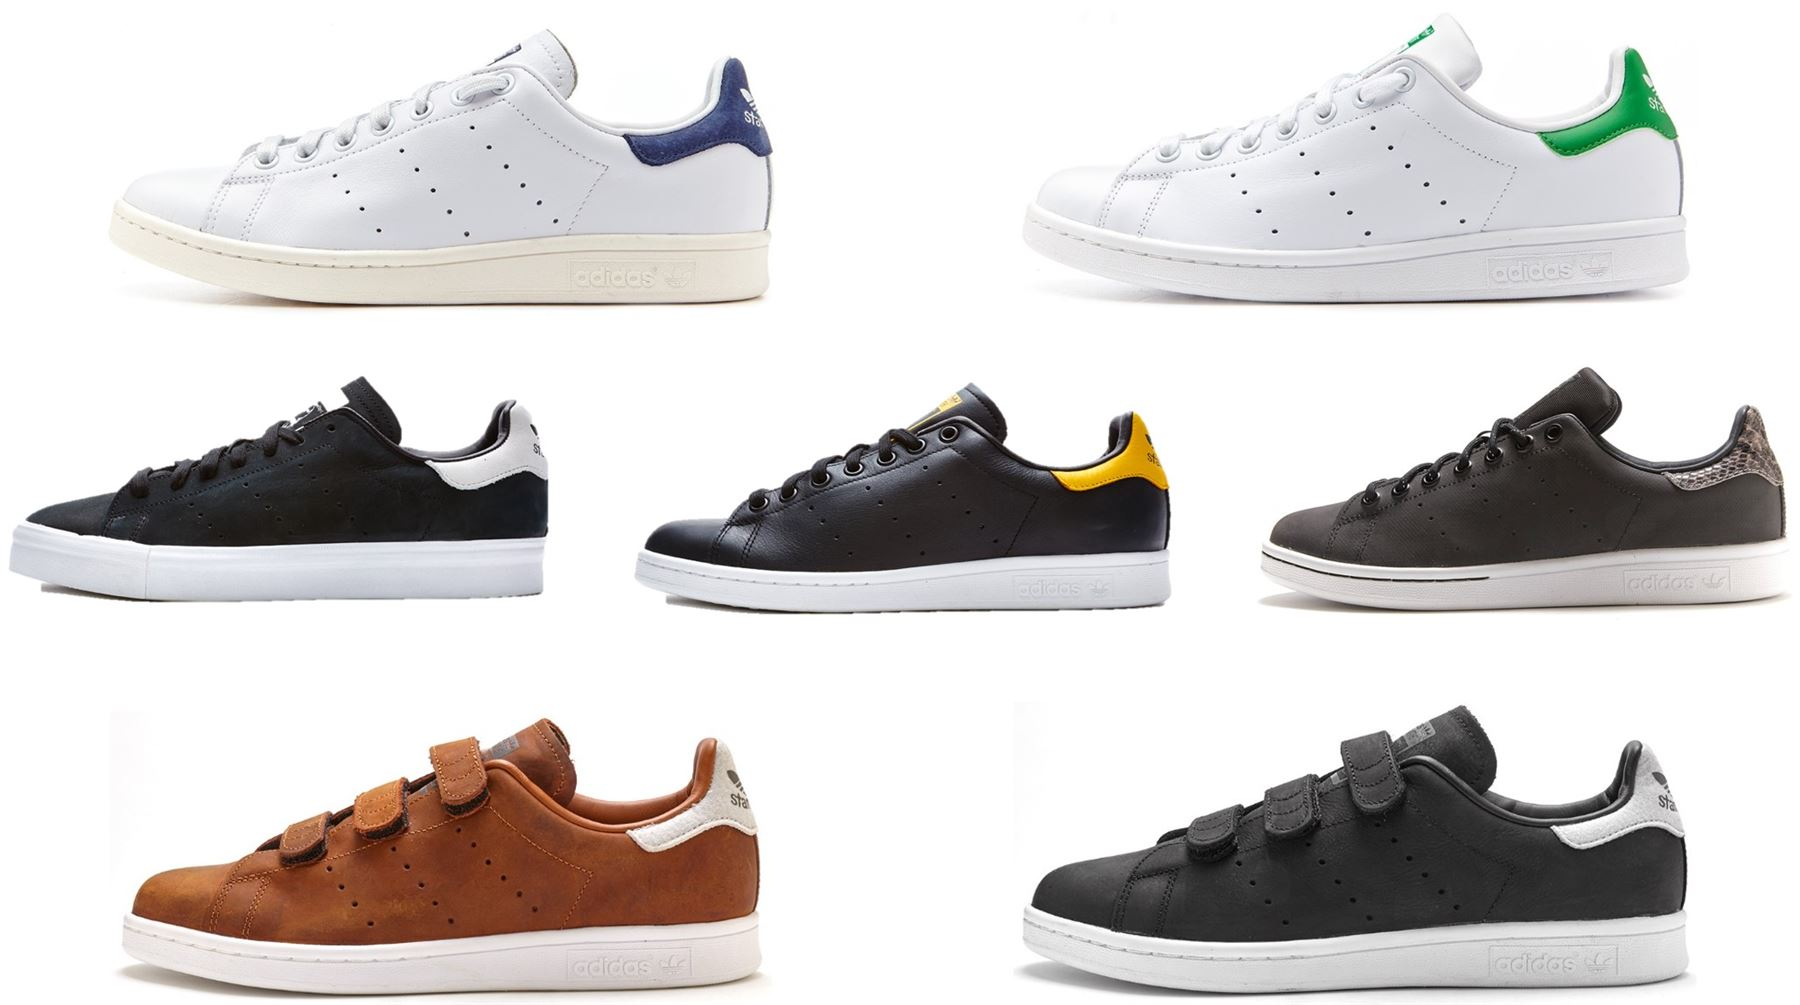 Adidas Stan Smith Klettverschluss 37